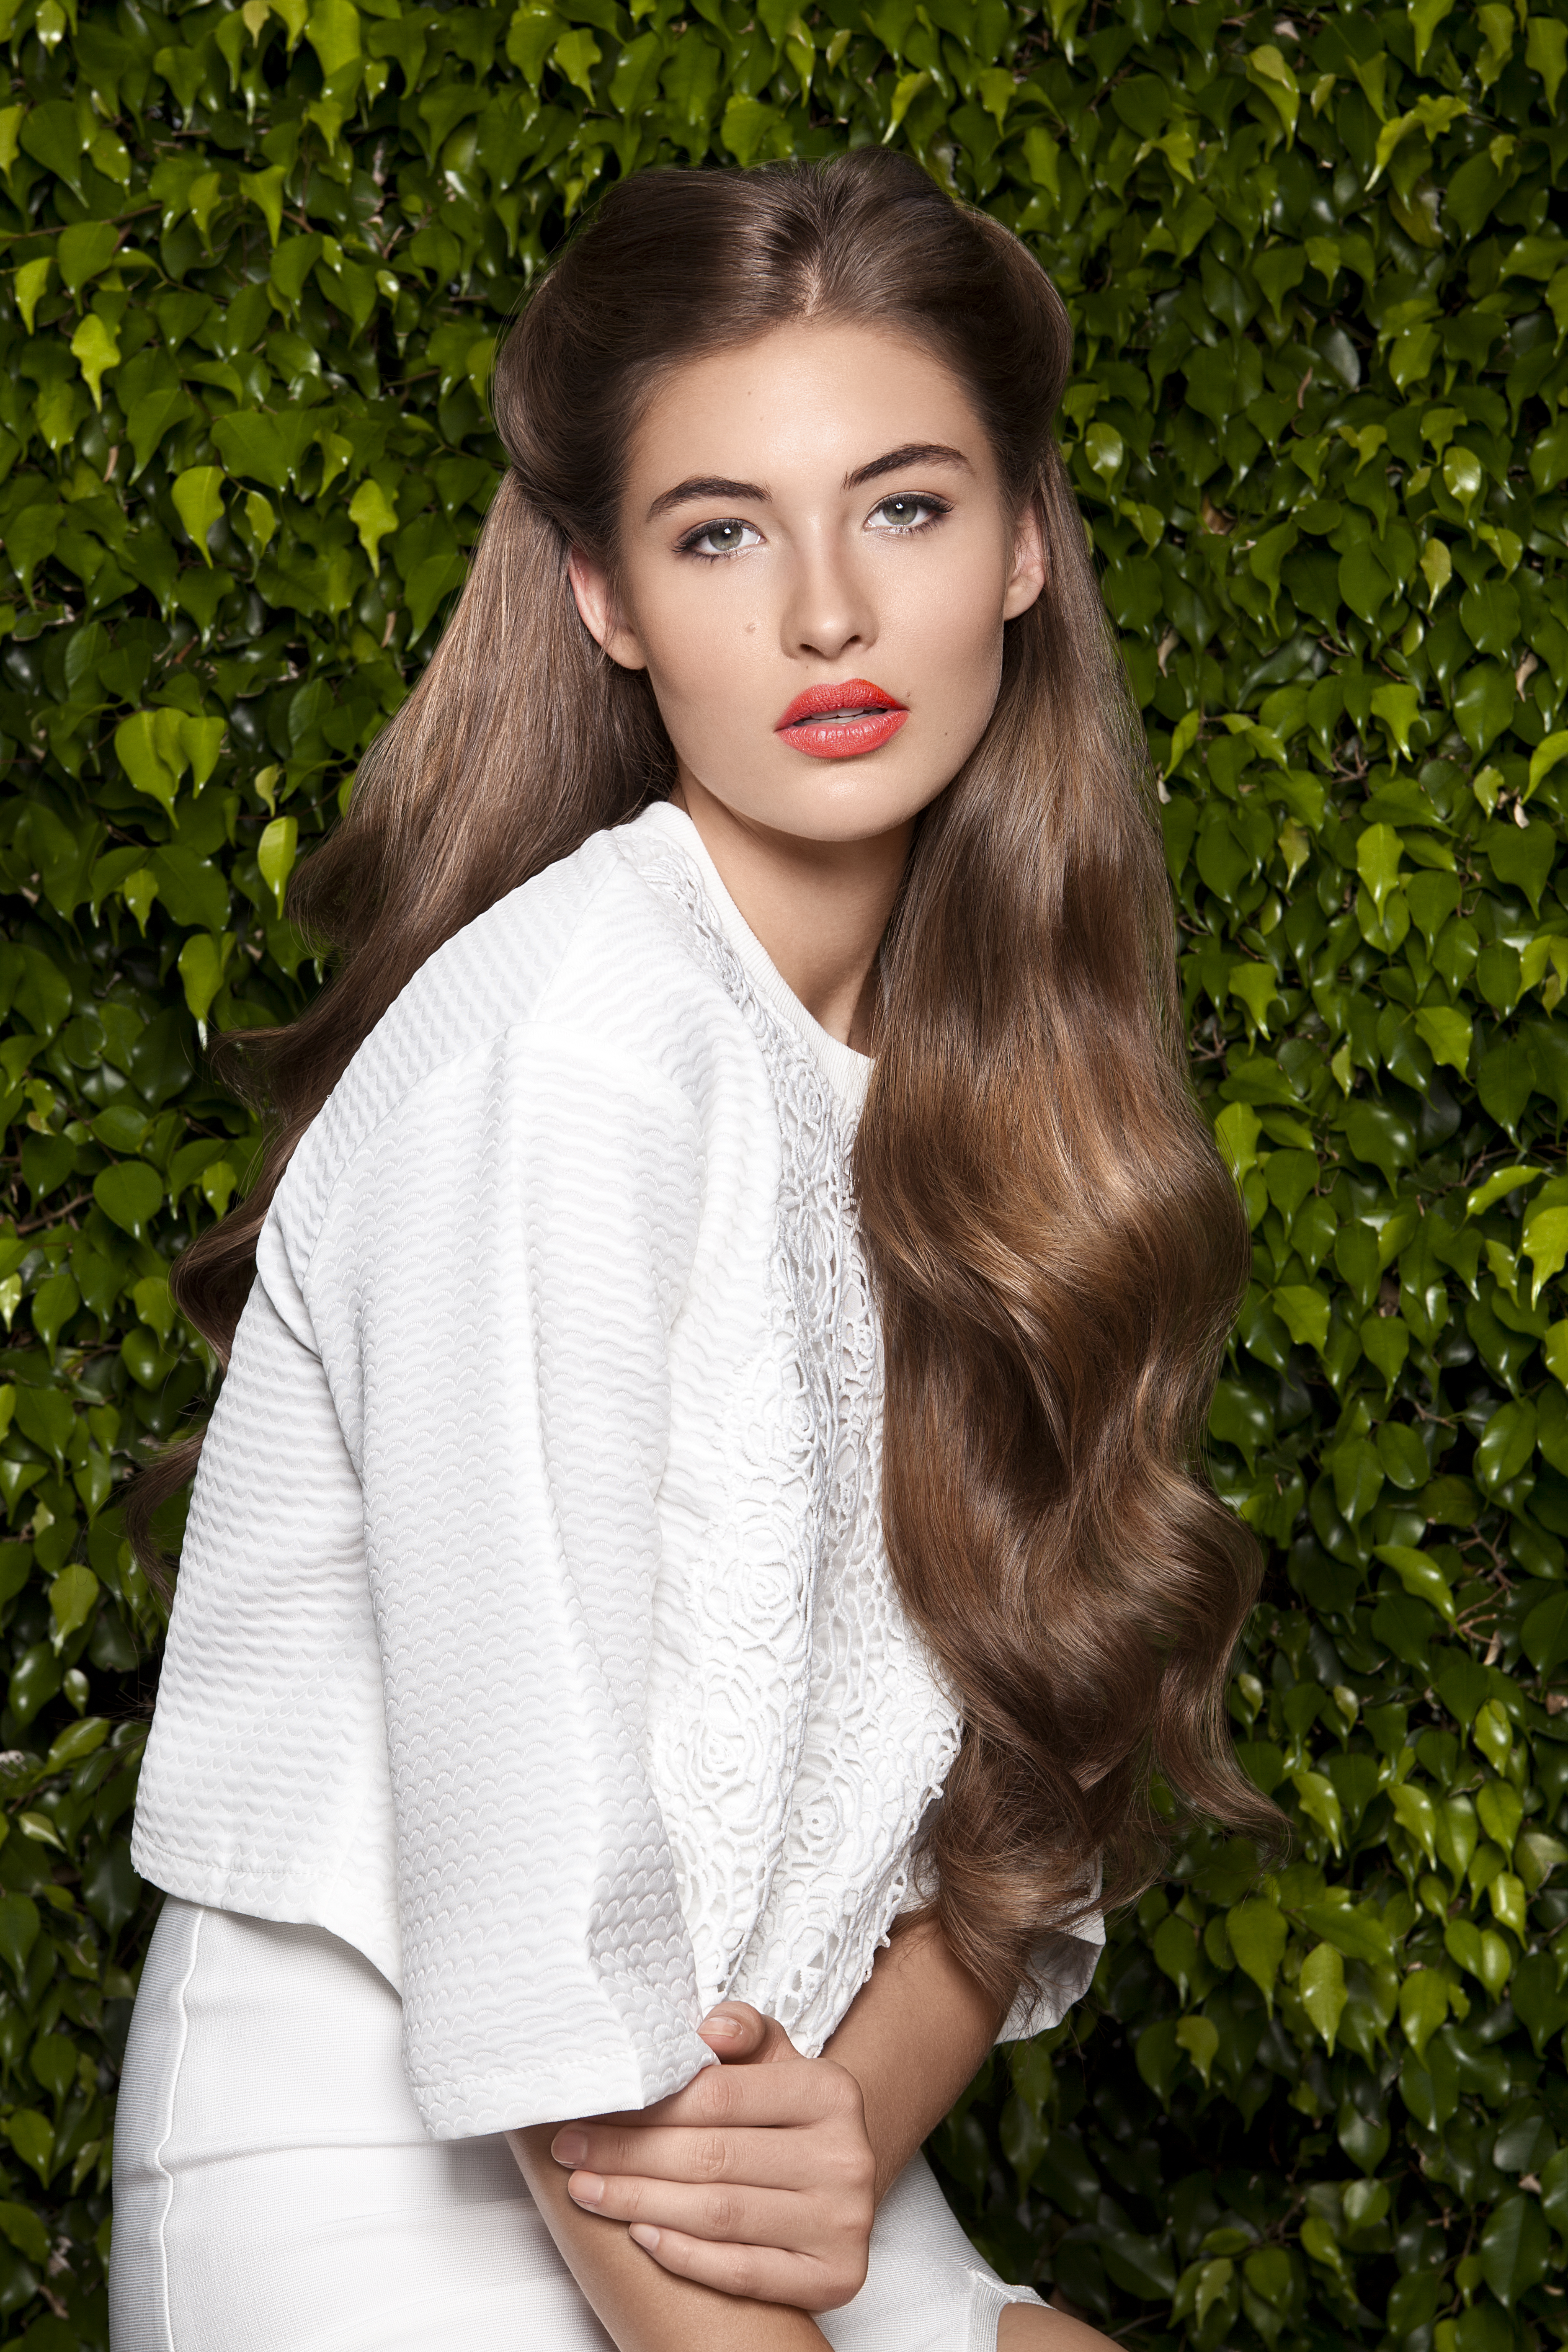 How Can Wefts be Applied for Natural-Looking Color Effects?